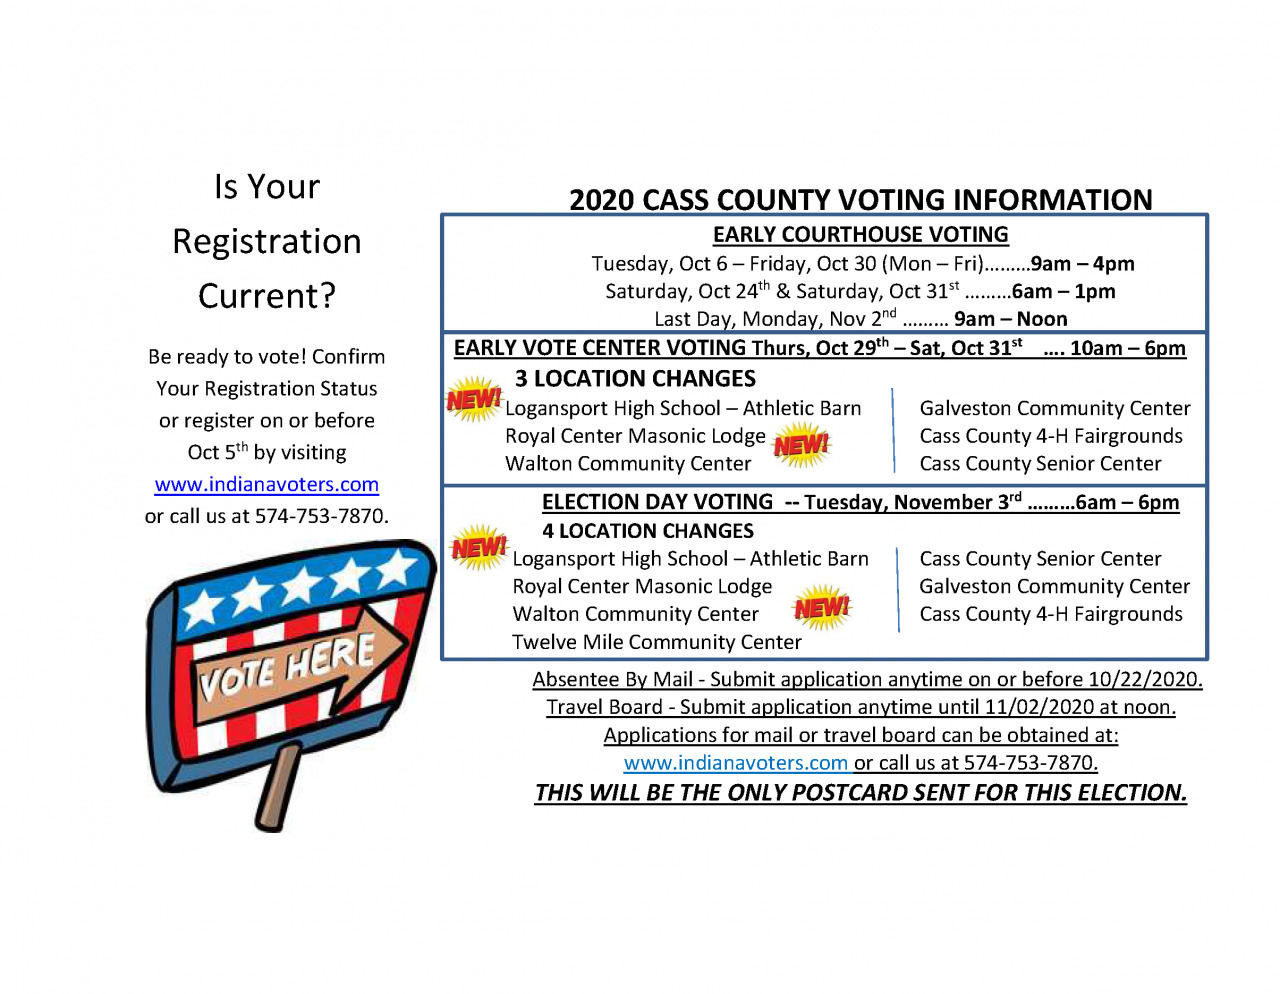 2020 Cass County Voting Information Postcard